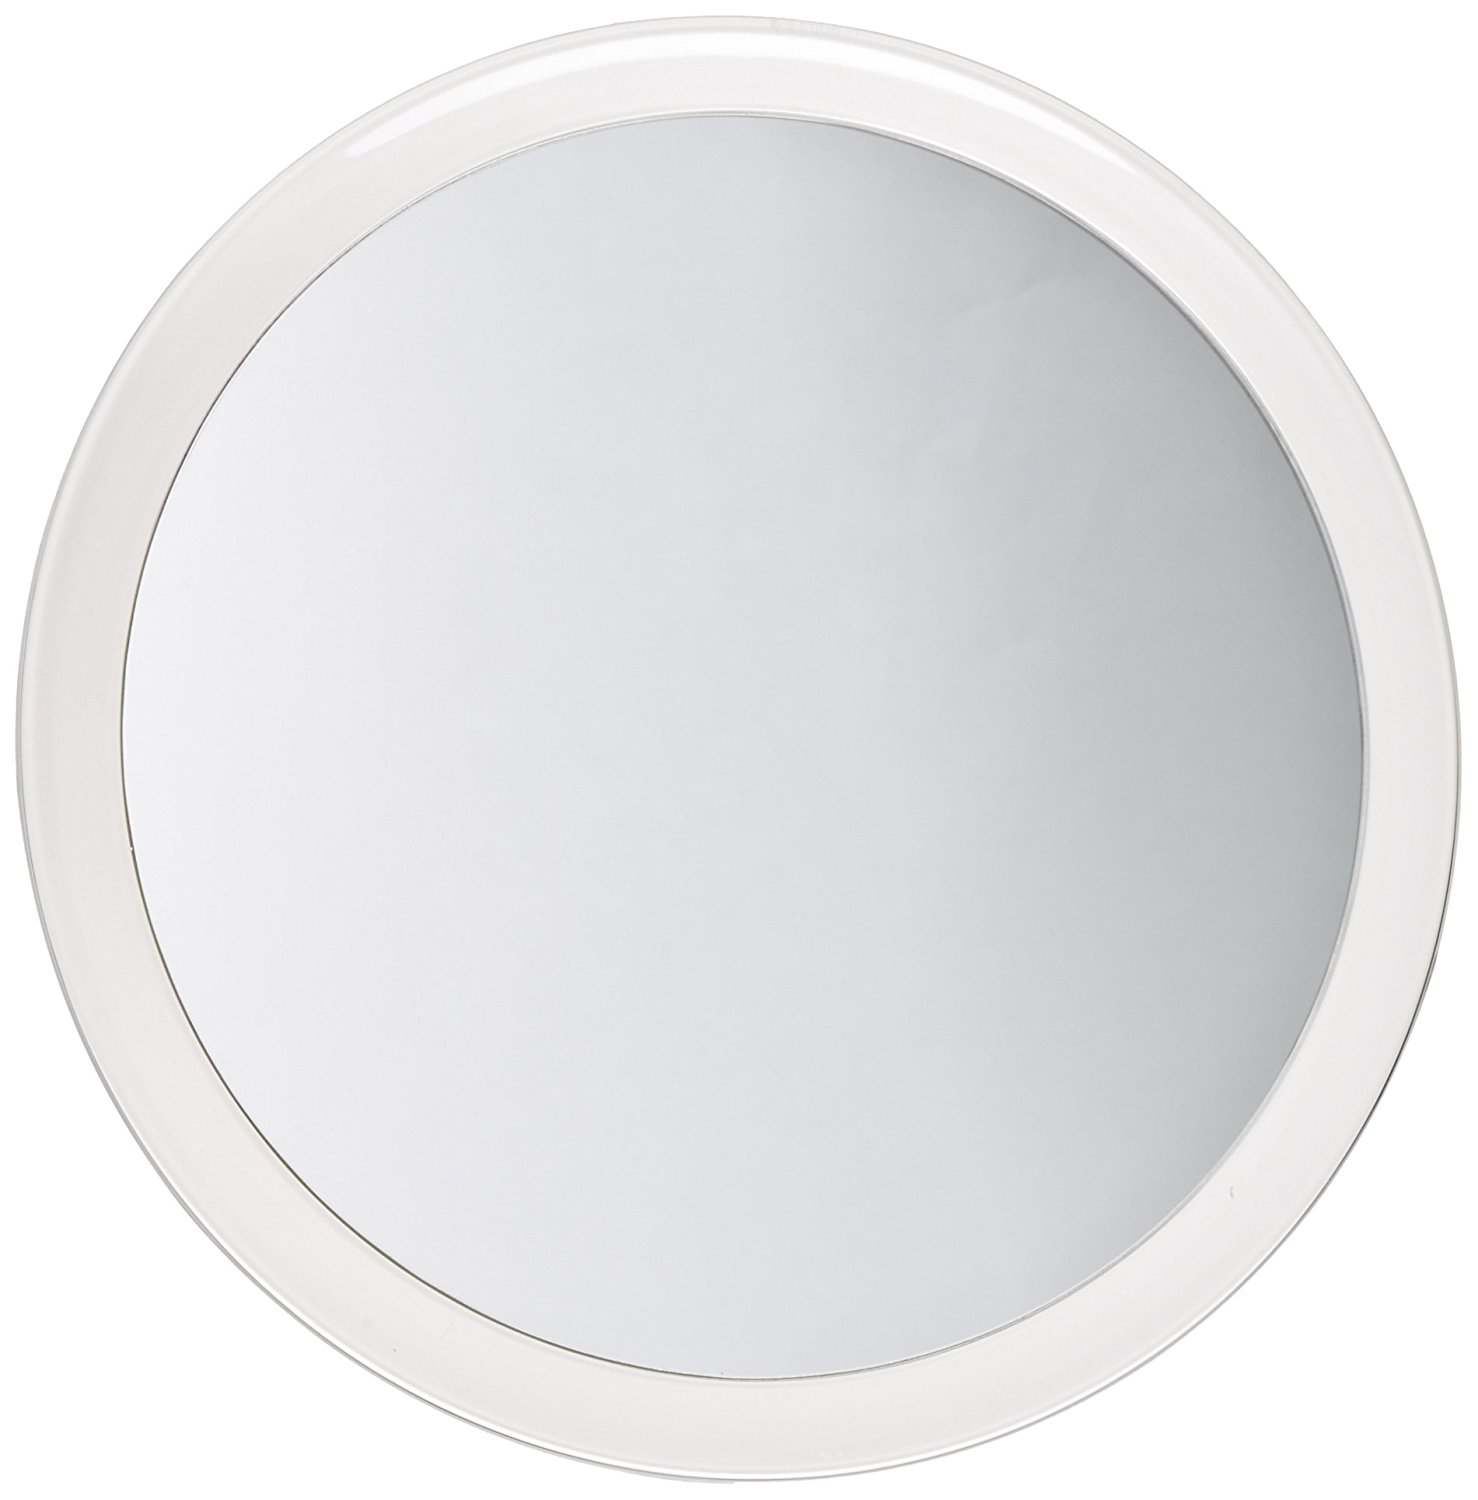 JSC5 9 Inch Portable Suction Mirror With 5x Magnification And Vinyl Travel  Case, Chrome And..., Portable Bathroom Mirror With Suctio, By Jerdon    Walmart. ...